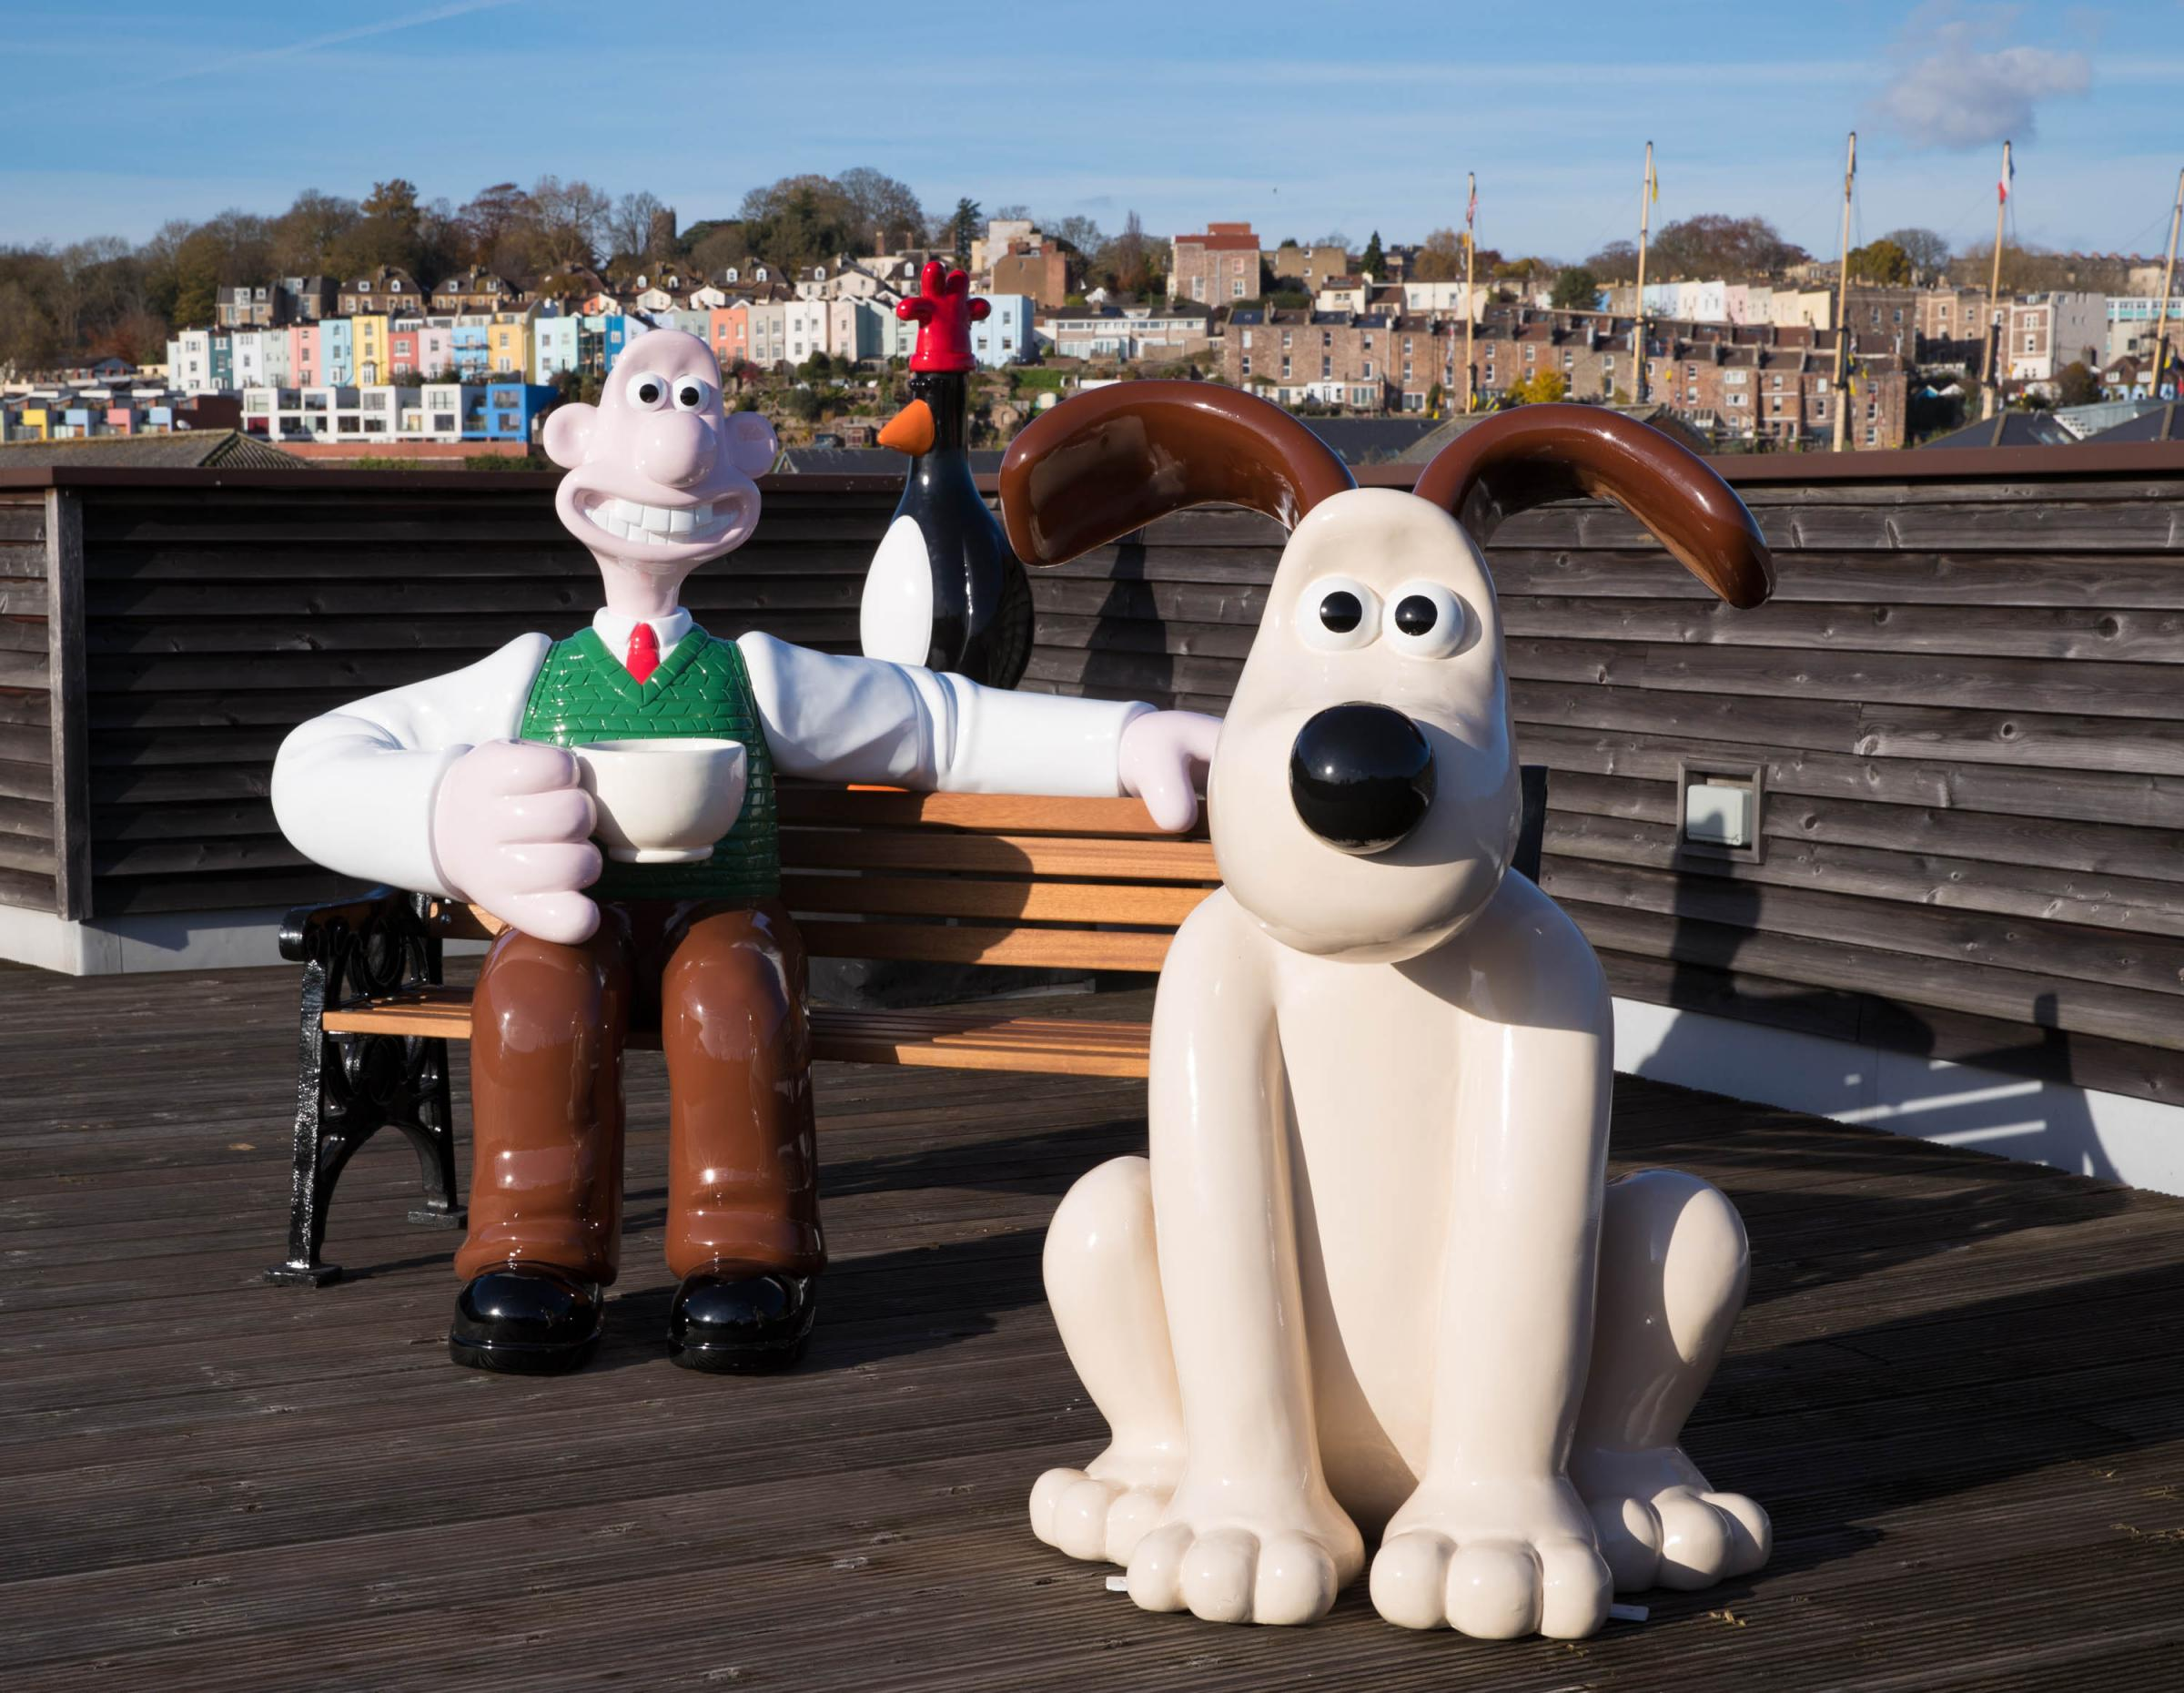 Engineering giant Renishaw to design statue for Wallace and Gromit Grand Appeal trail